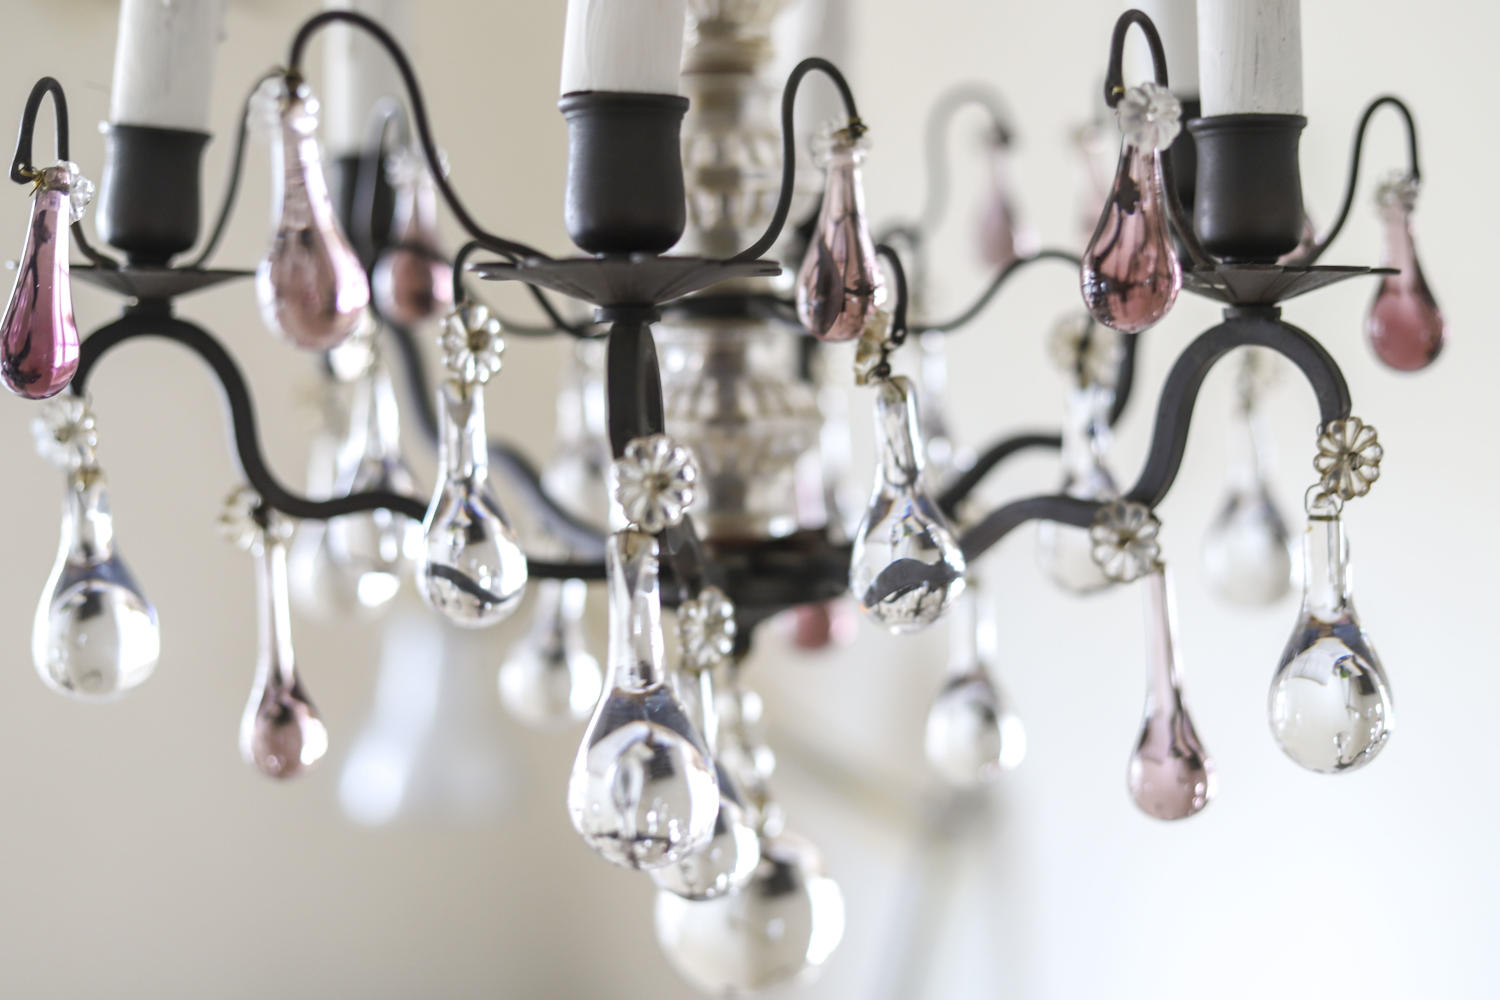 19th century French antique 6 branch crystal chandelier